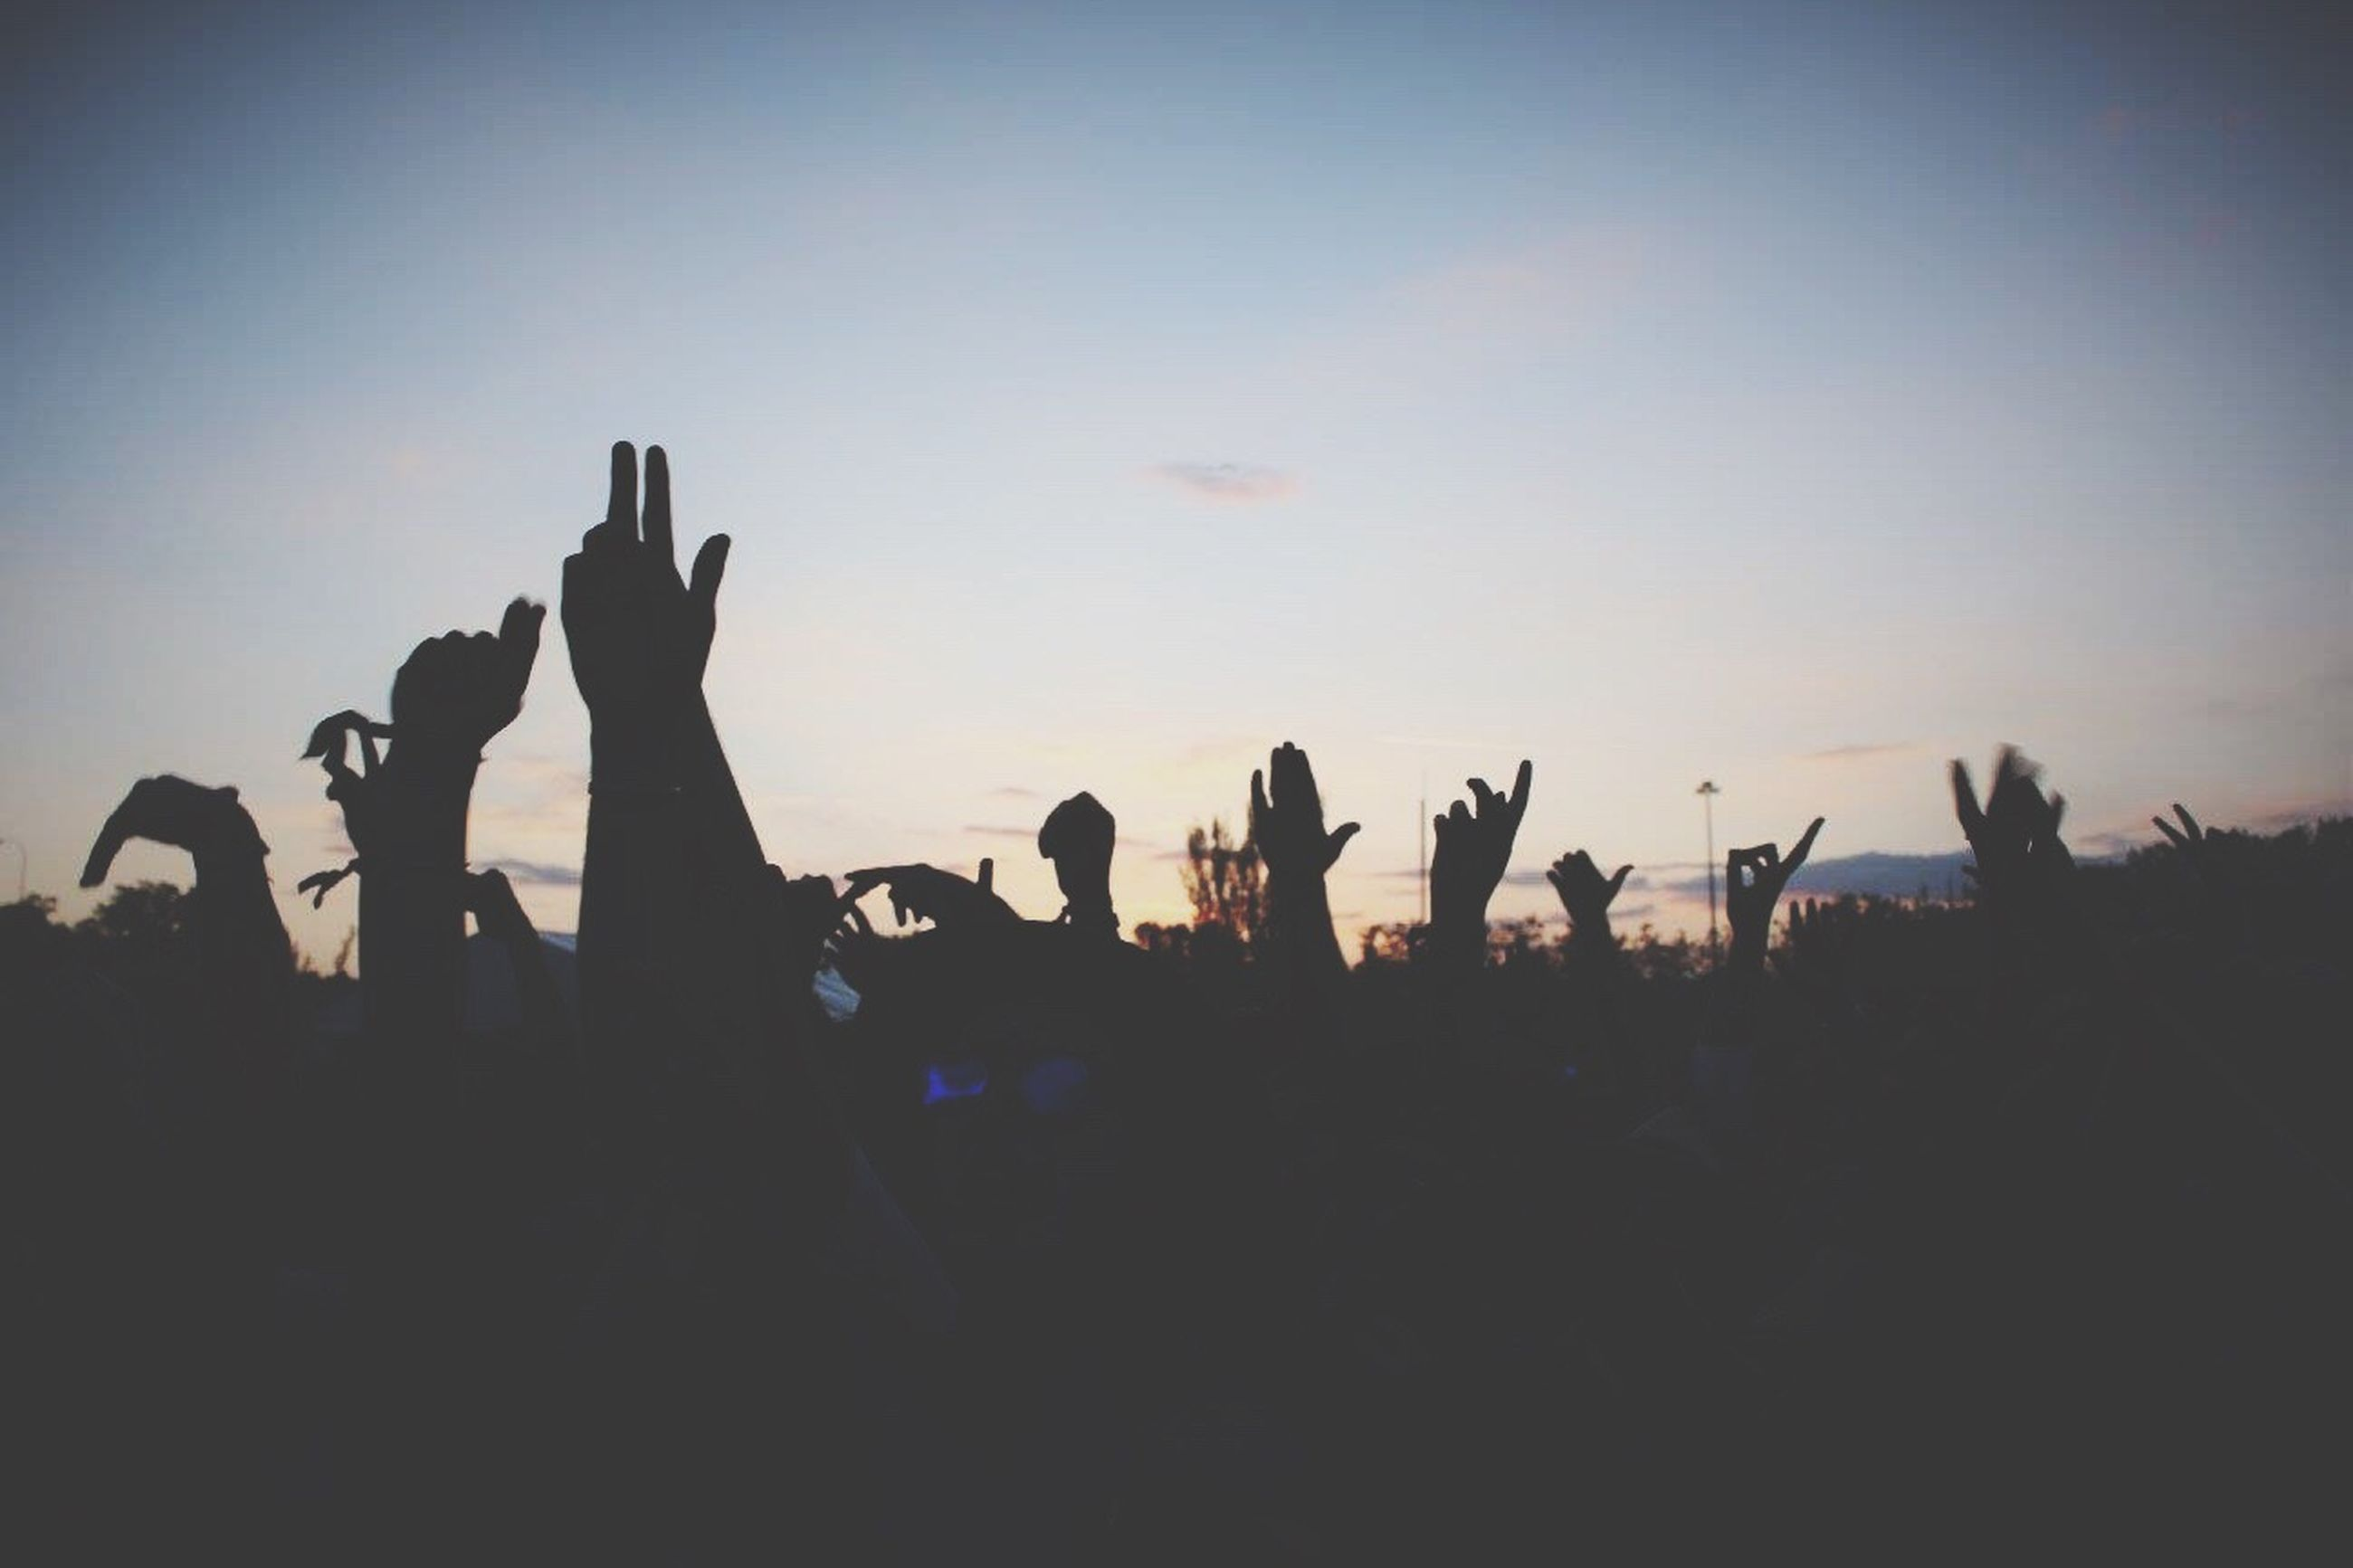 large group of people, silhouette, sunset, men, lifestyles, leisure activity, crowd, person, sky, togetherness, copy space, enjoyment, clear sky, mixed age range, dusk, outdoors, arts culture and entertainment, fun, outline